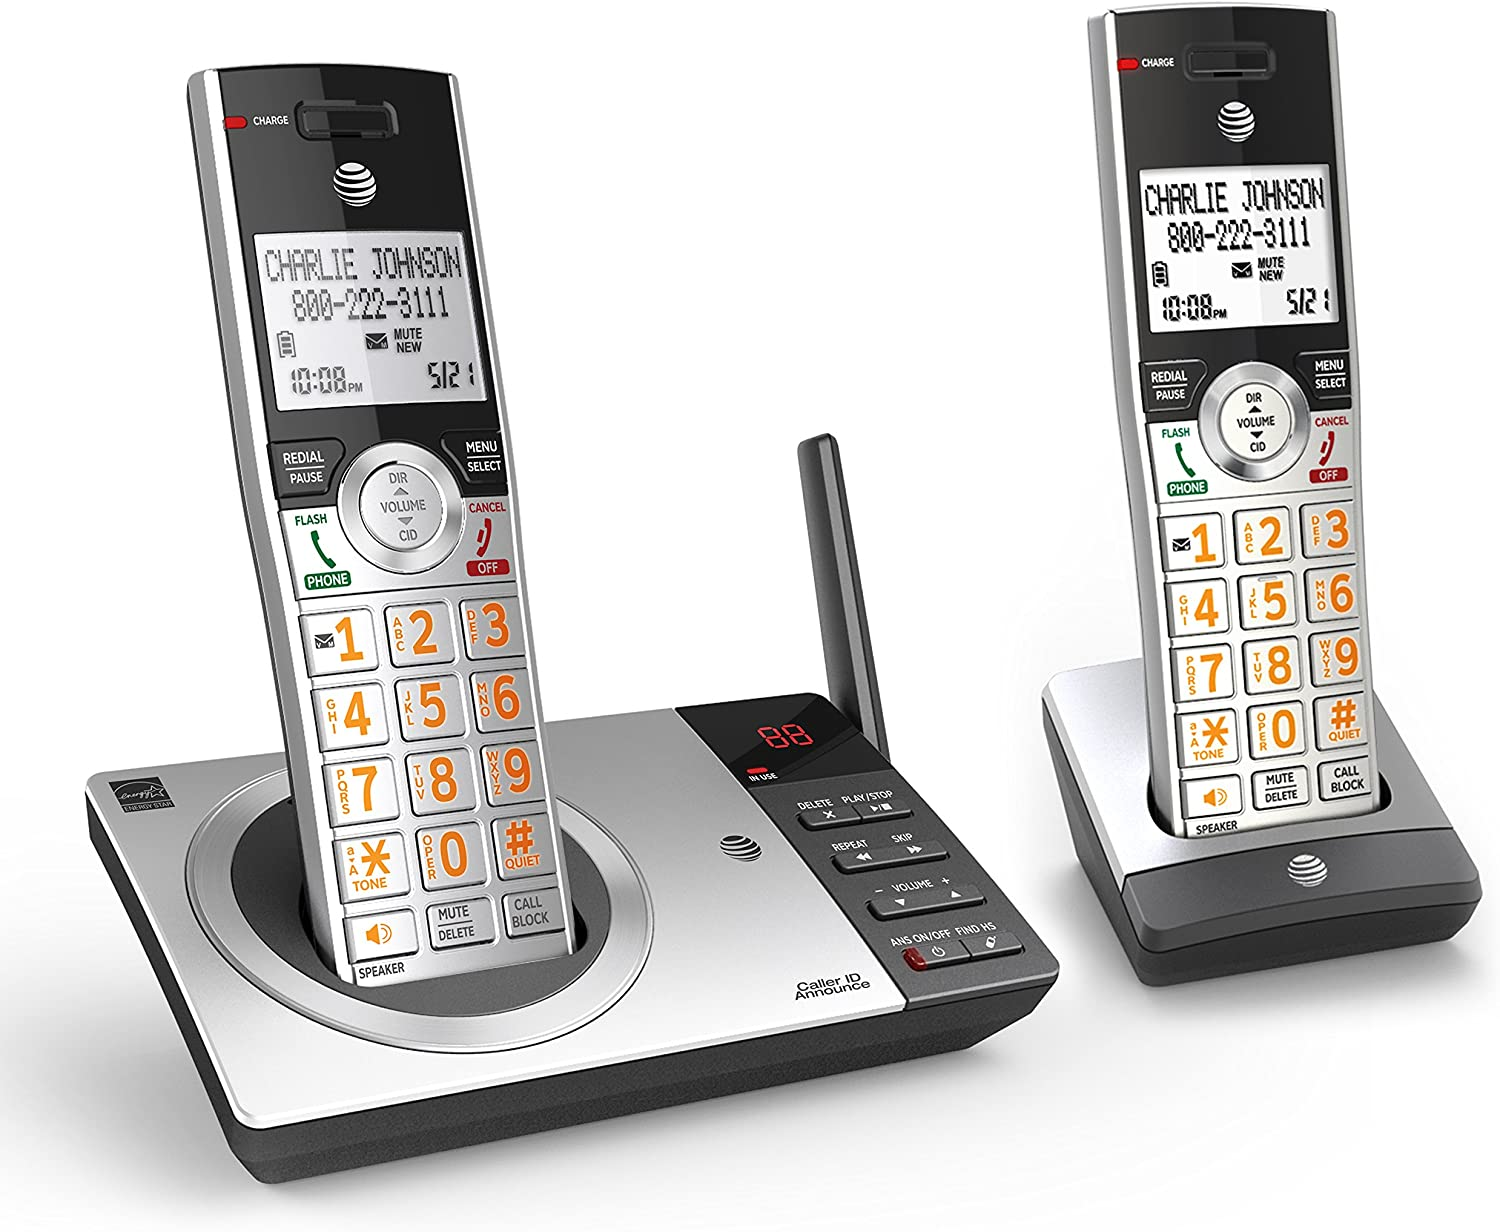 AT&T DECT 6.0 Expandable Cordless Phone with Answering System, Silver/Black with 2 Handset